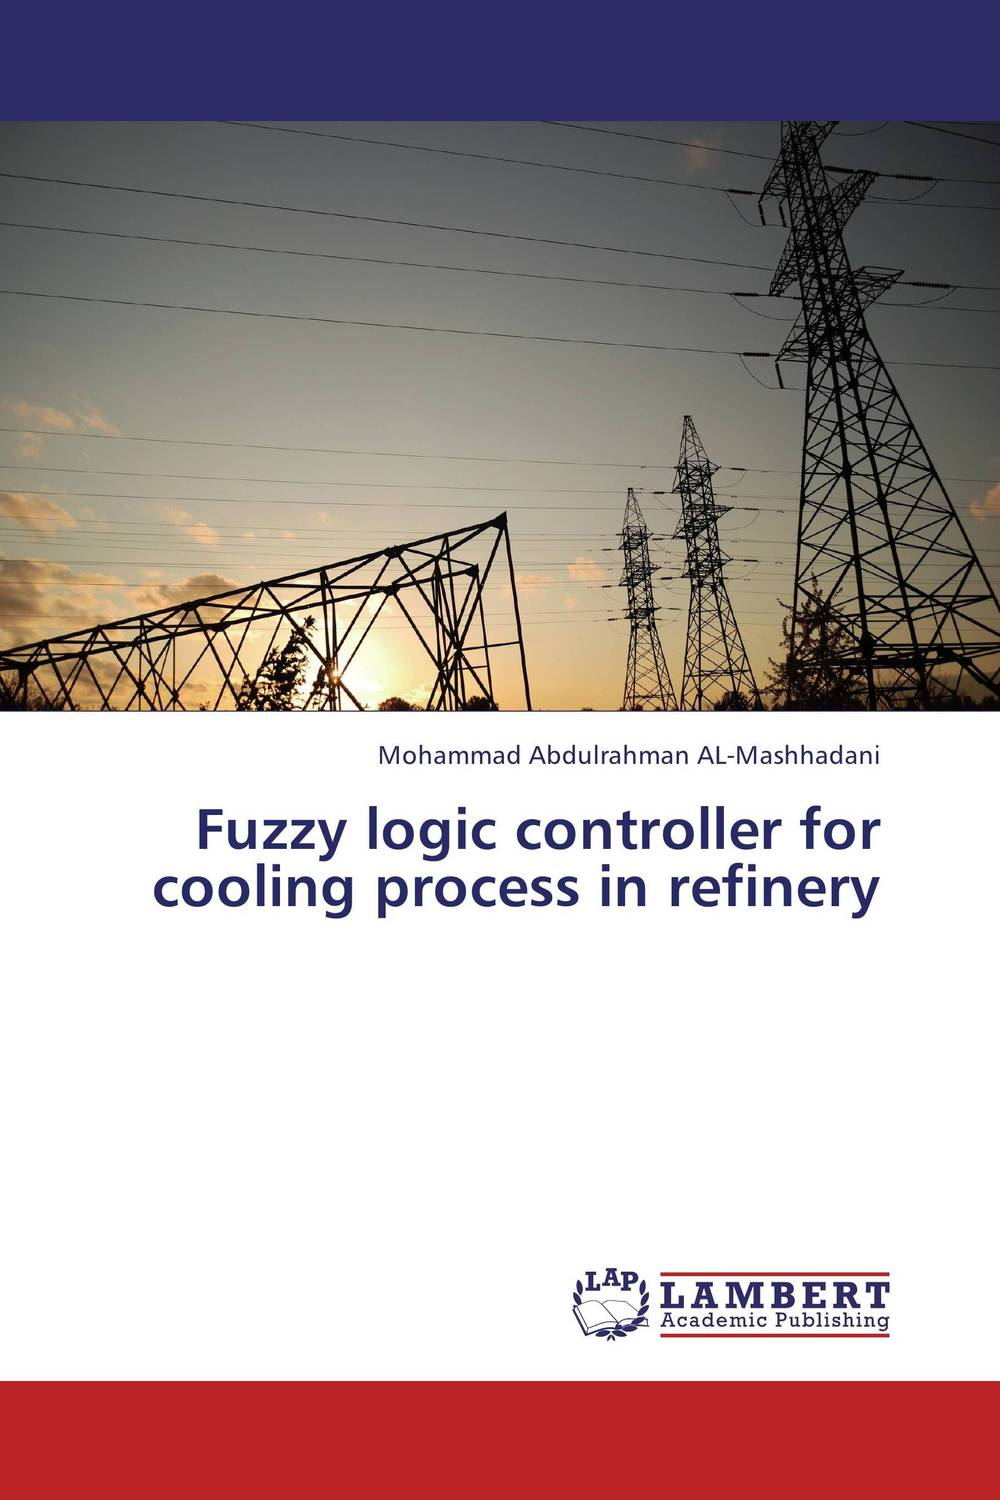 Fuzzy logic controller for cooling process in refinery